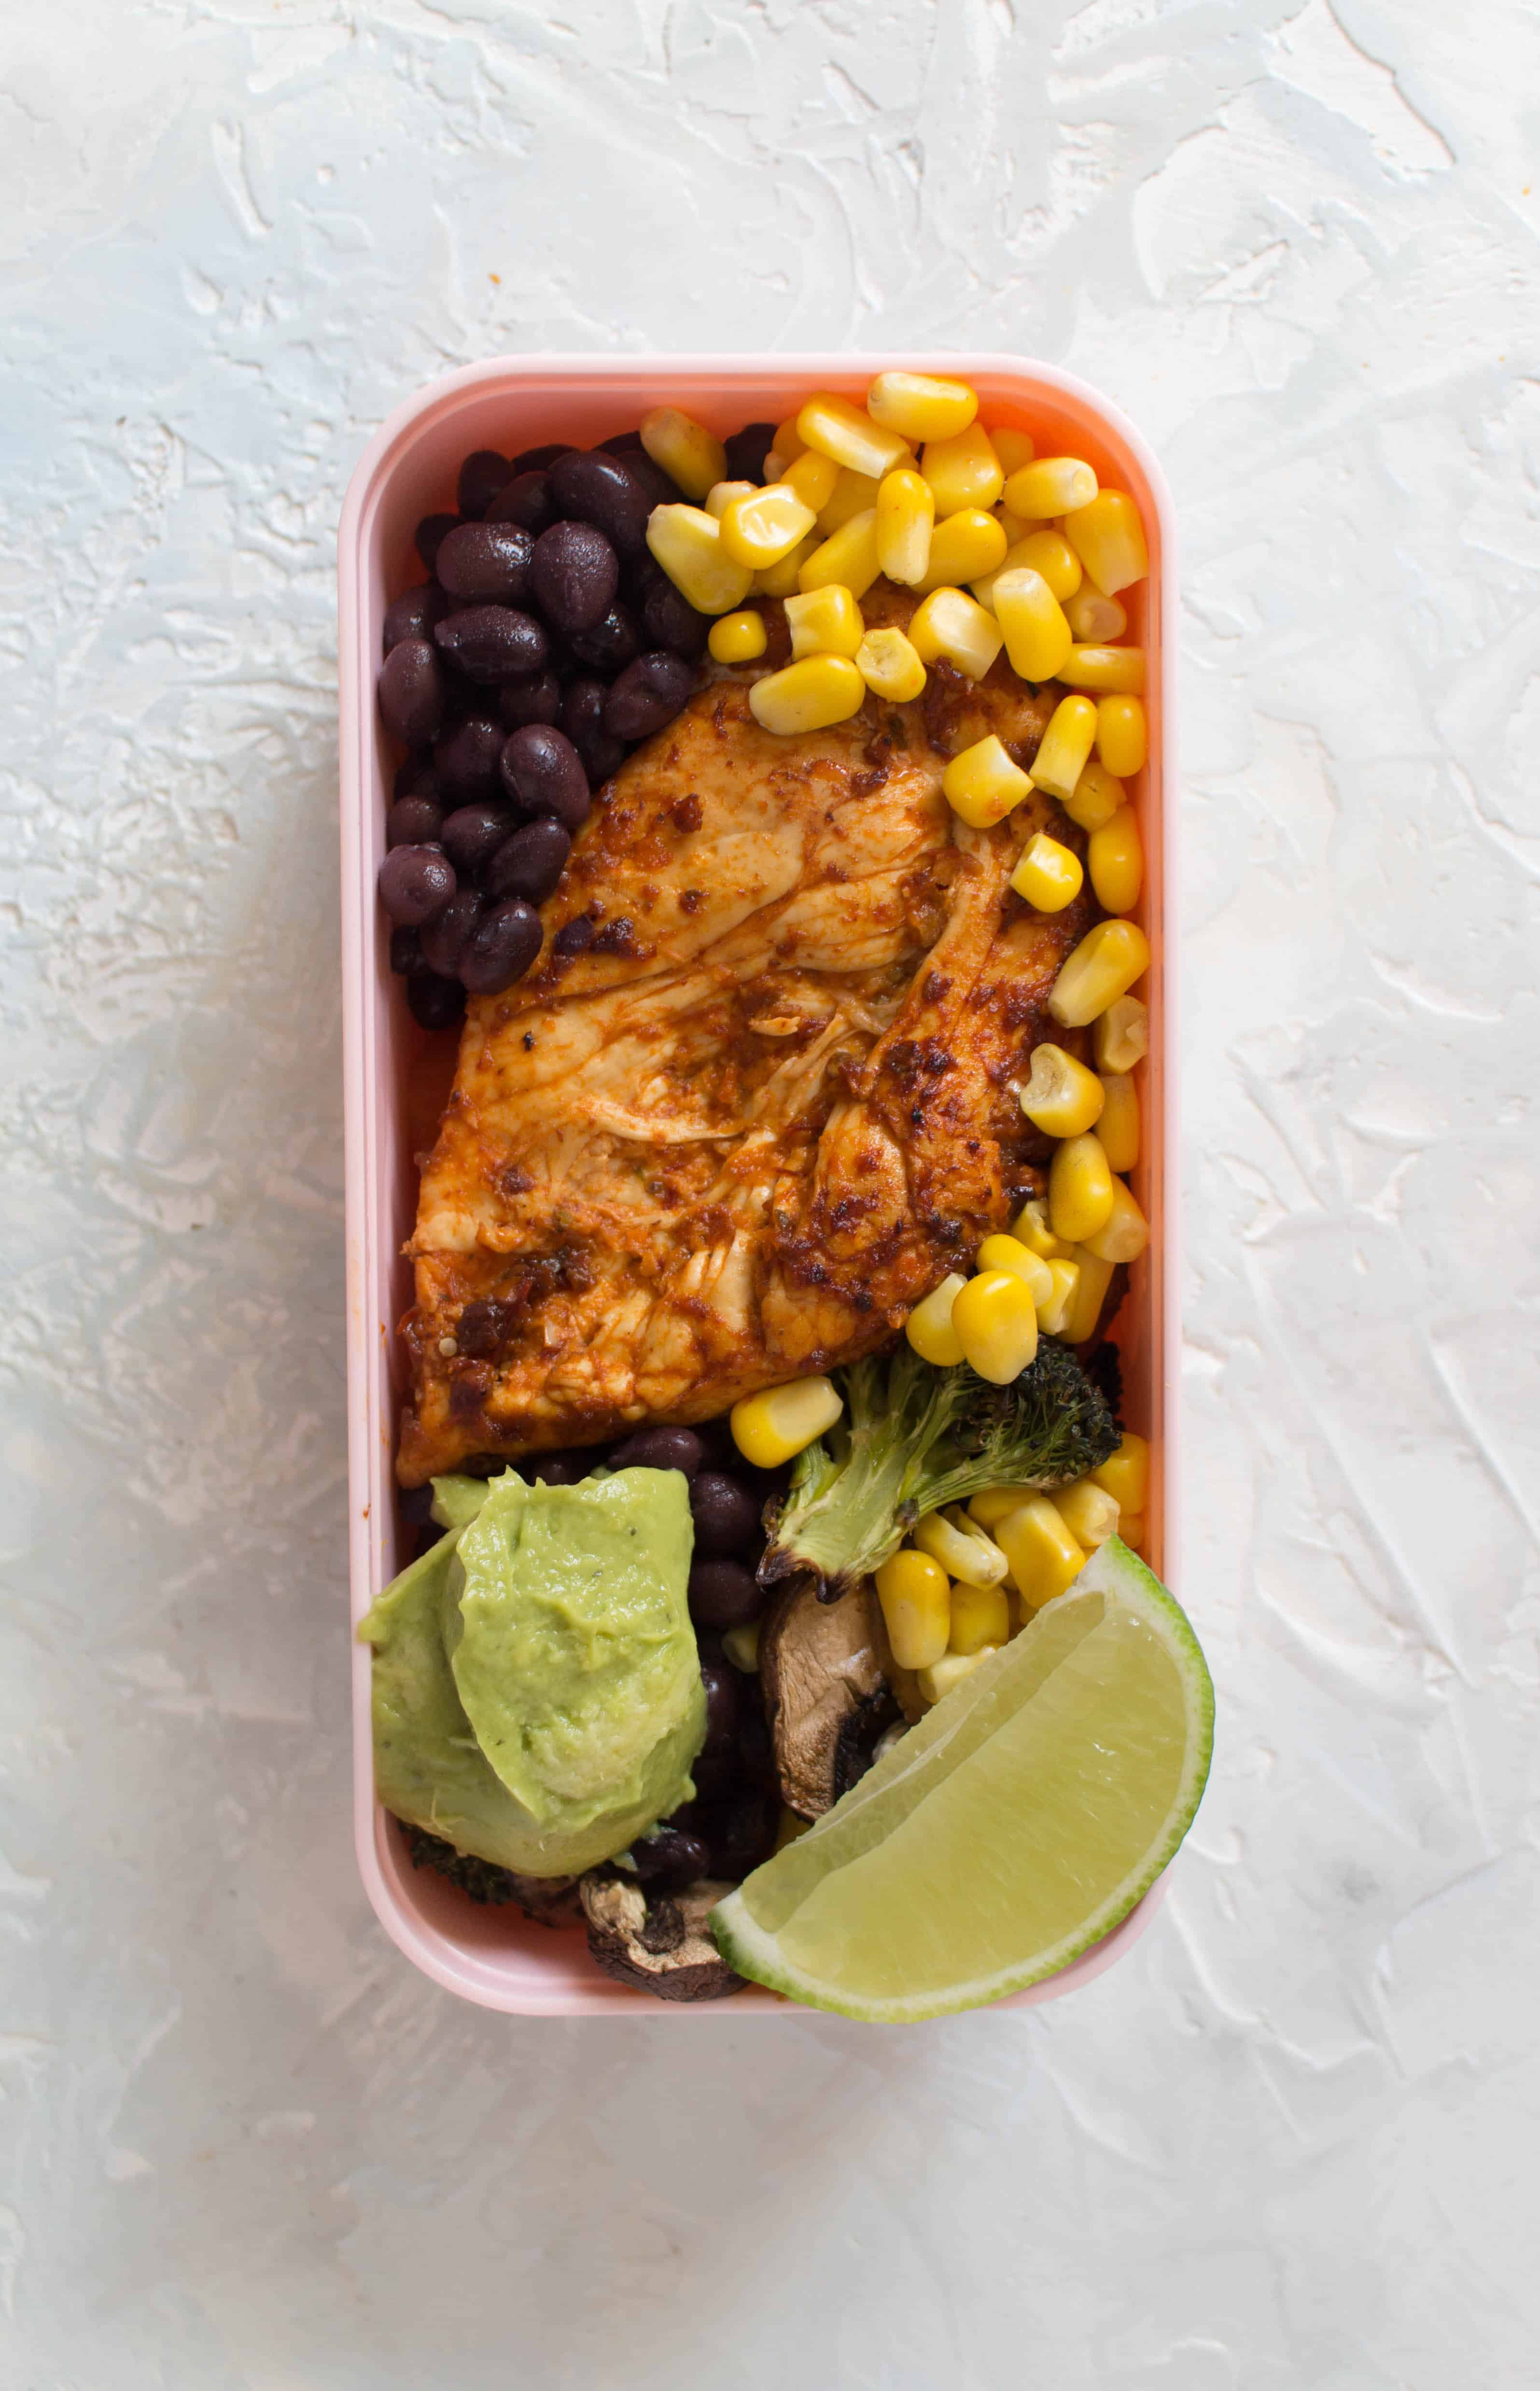 Looking for a little more variety in your weekly meal prep? This chipotle chicken meal prep 4 ways is simple but changes slightly between each dish so you don't have to eat the same exact lunch 4 days in a row without having to do additional work!